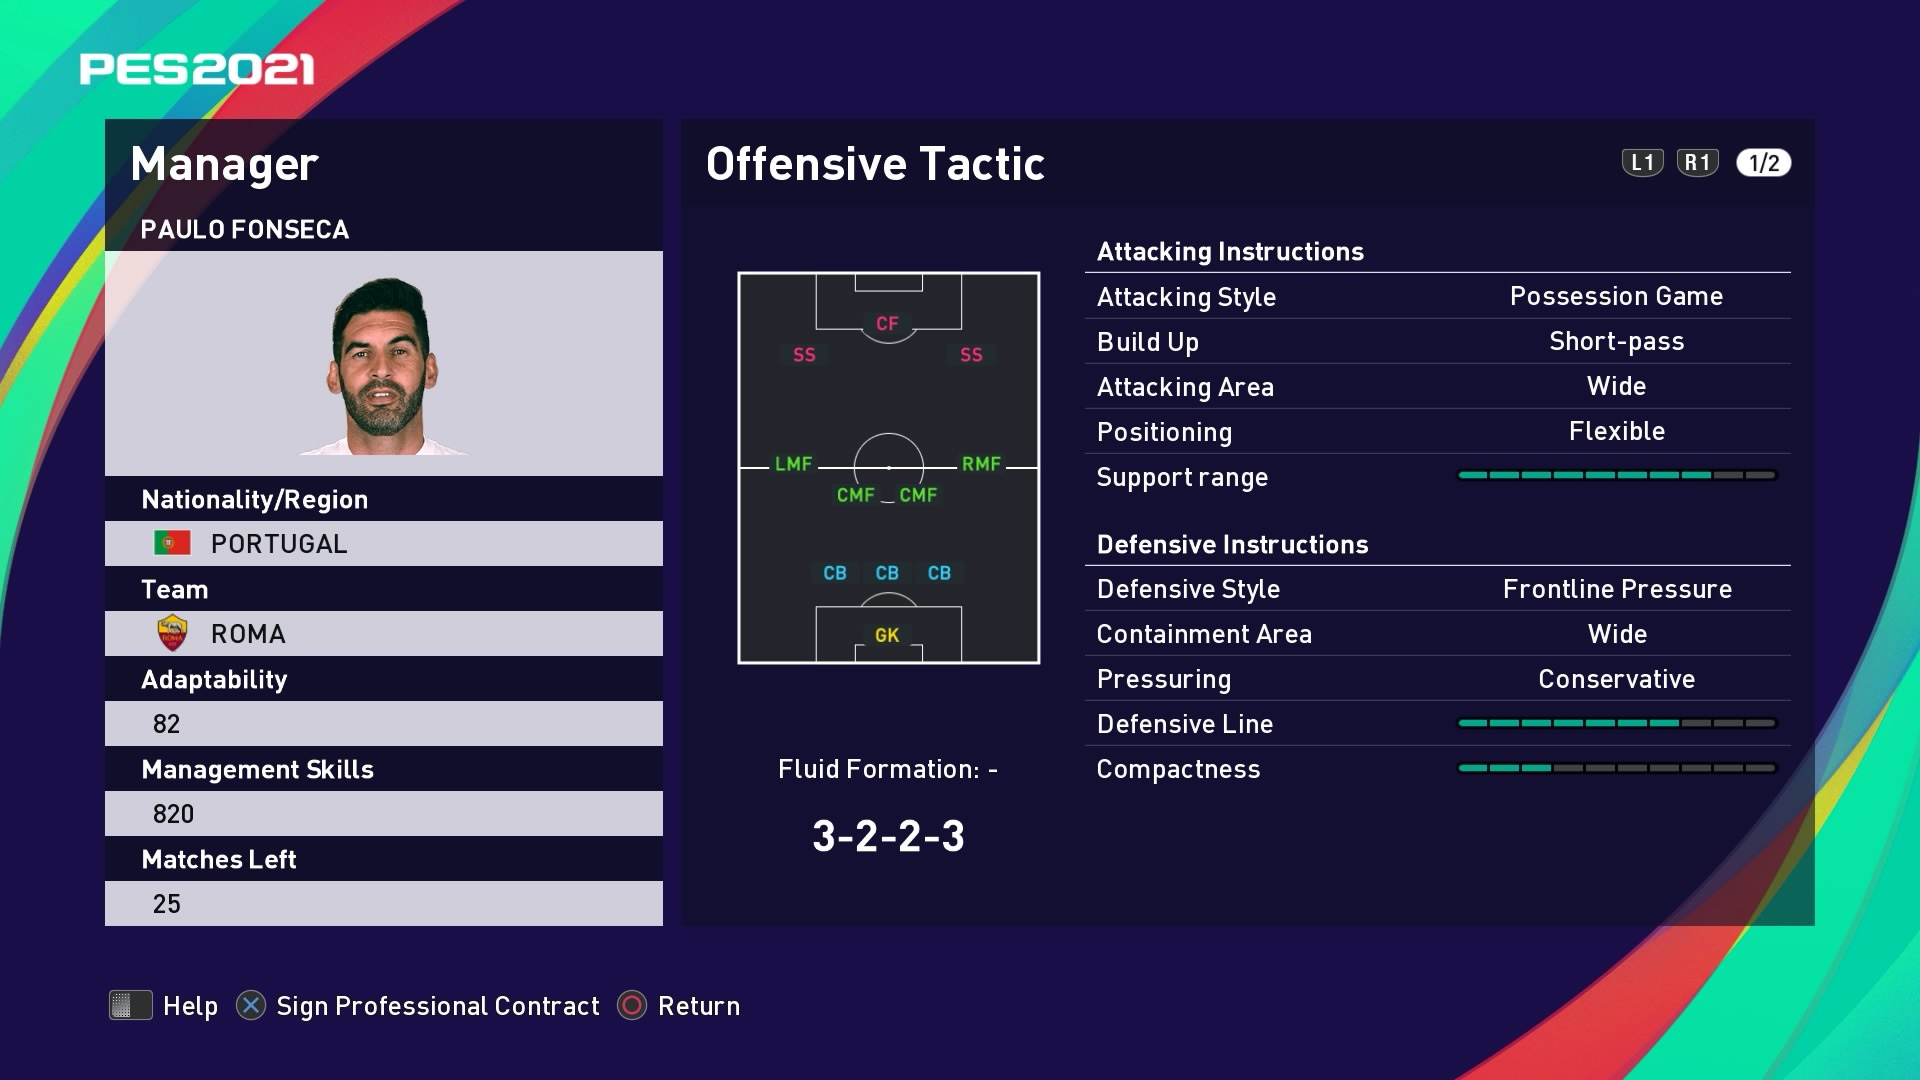 Paulo Fonseca Offensive Tactic in PES 2021 myClub